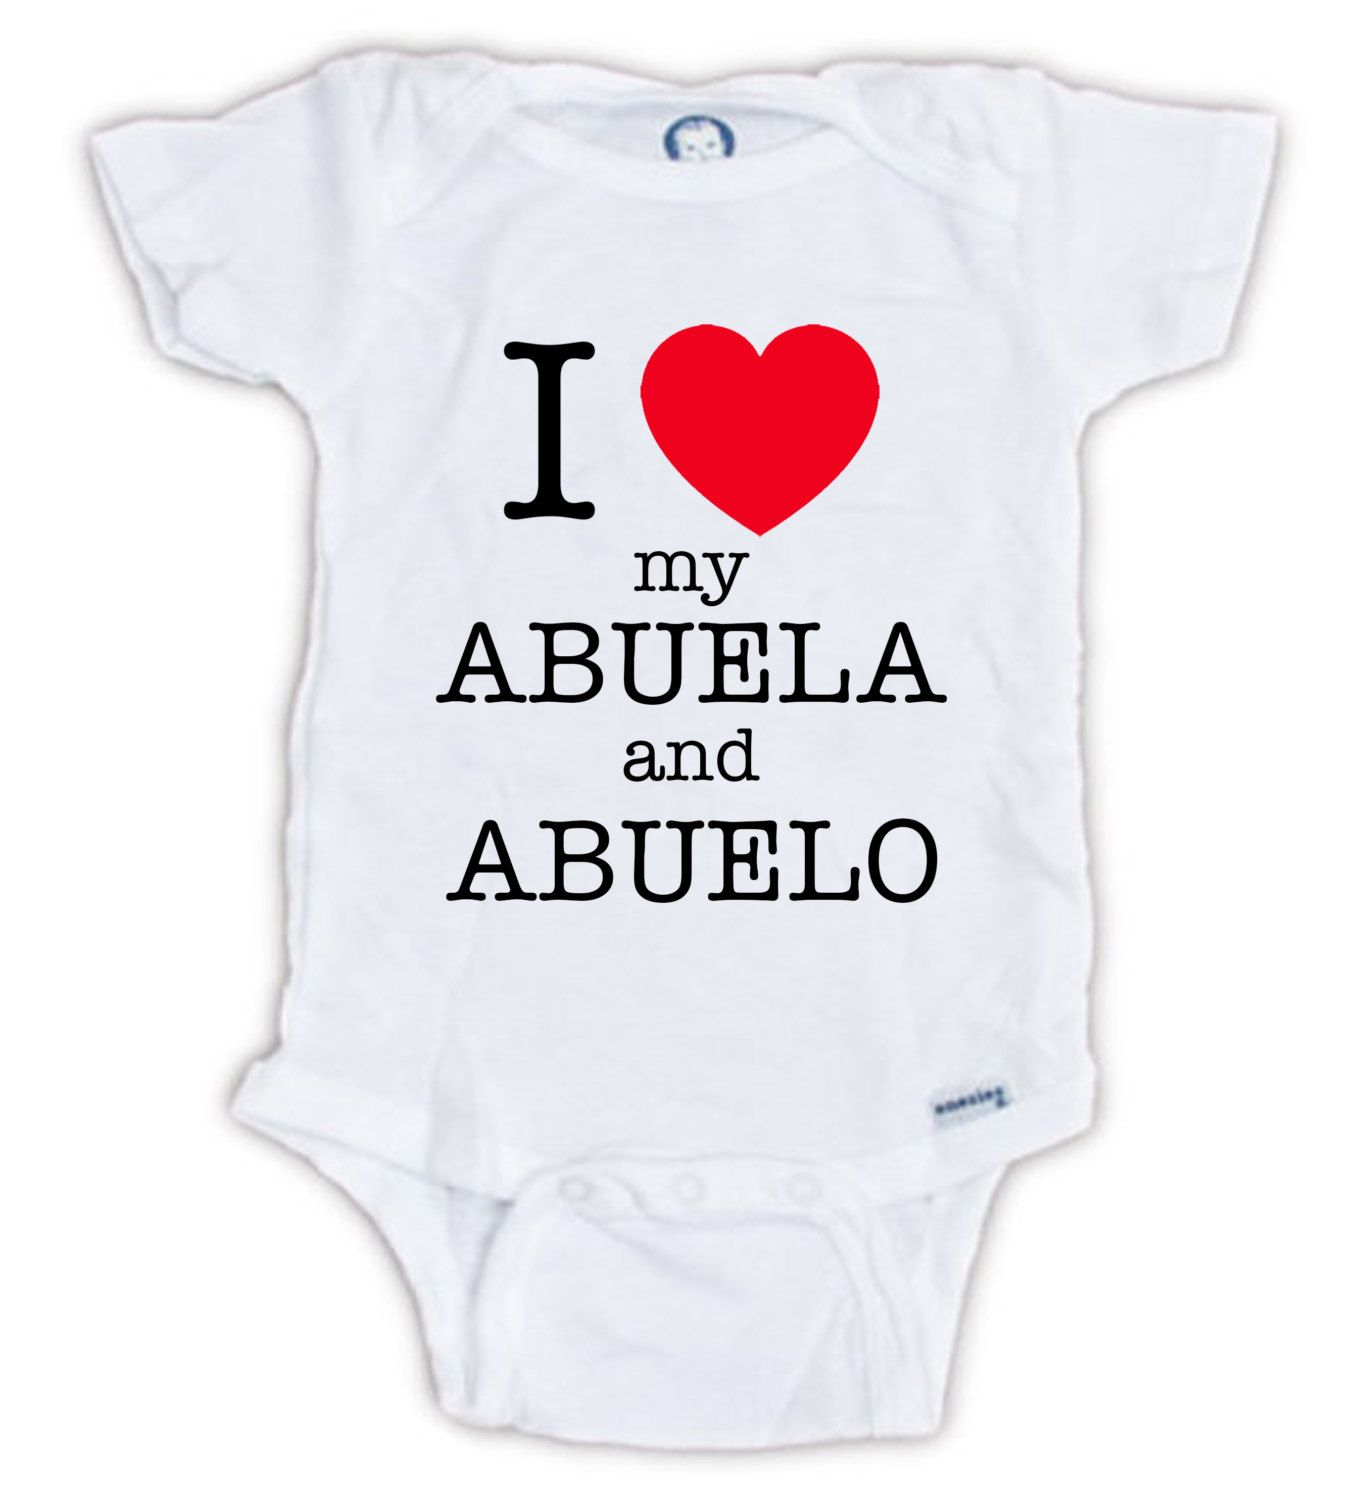 bc734605c I Love my Abuela and Abuelo Spanish onesie by JujuApparel